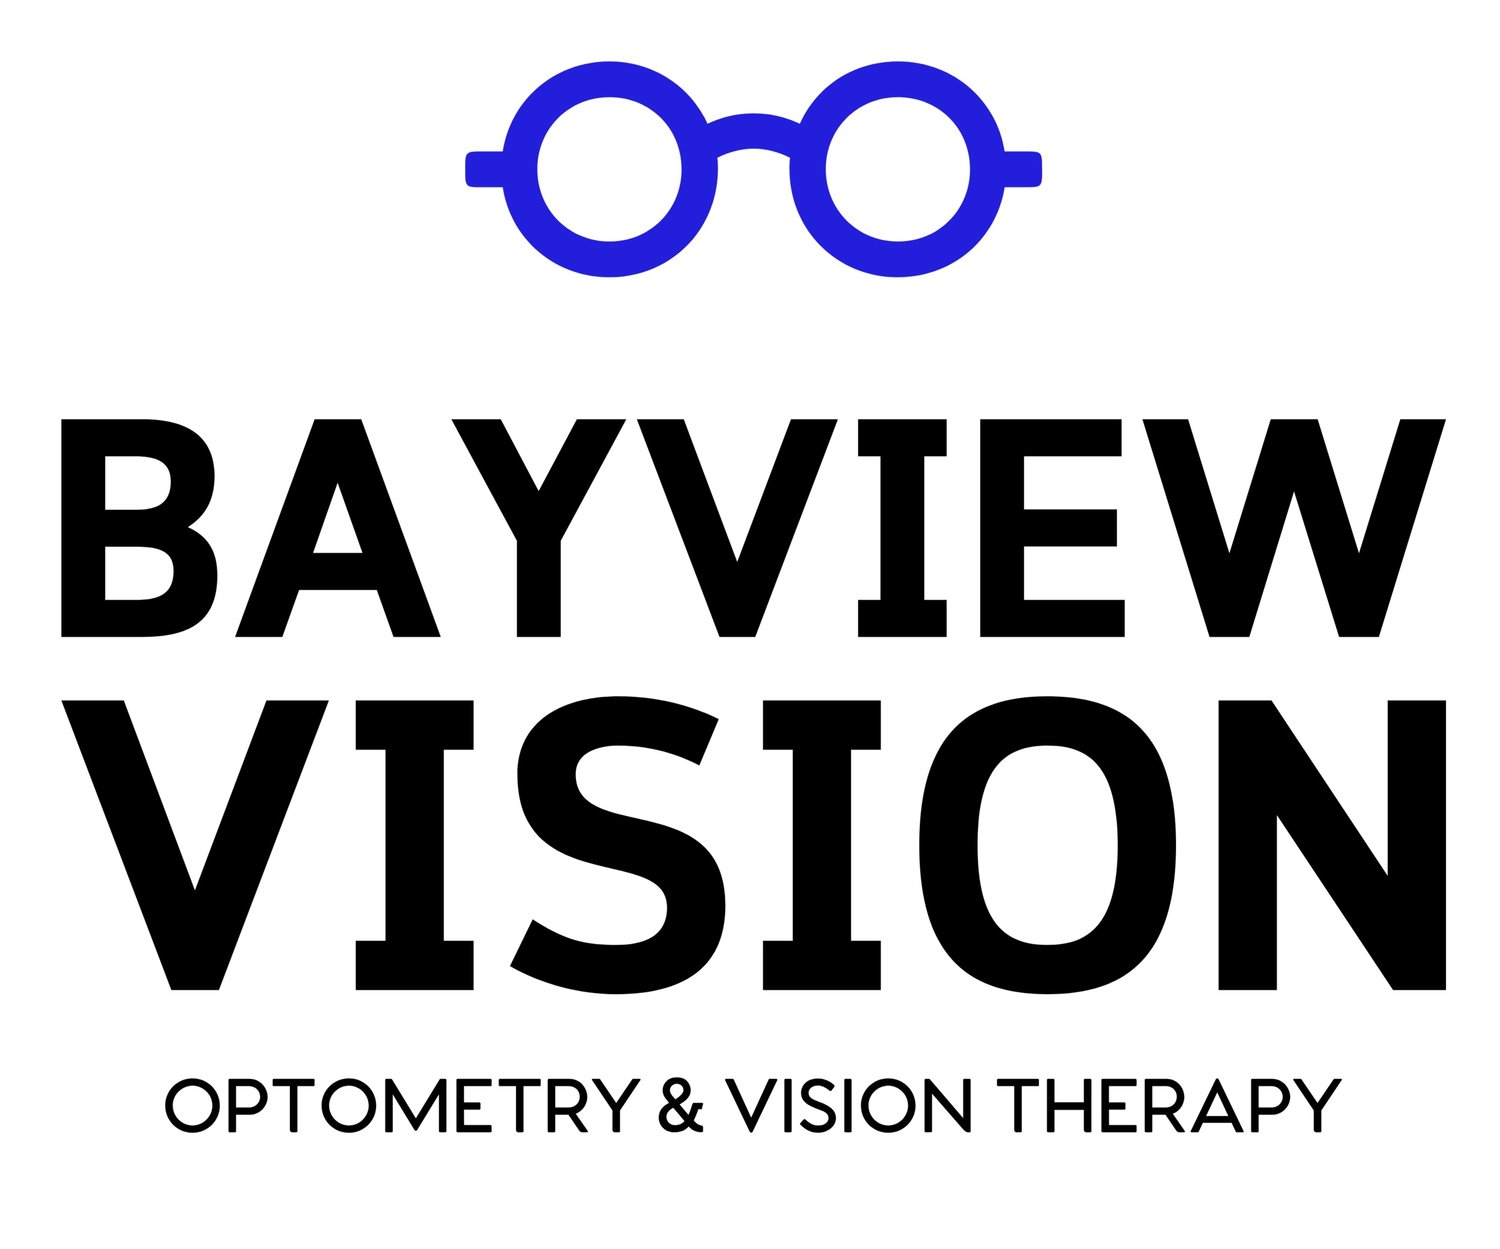 Bayview Vision